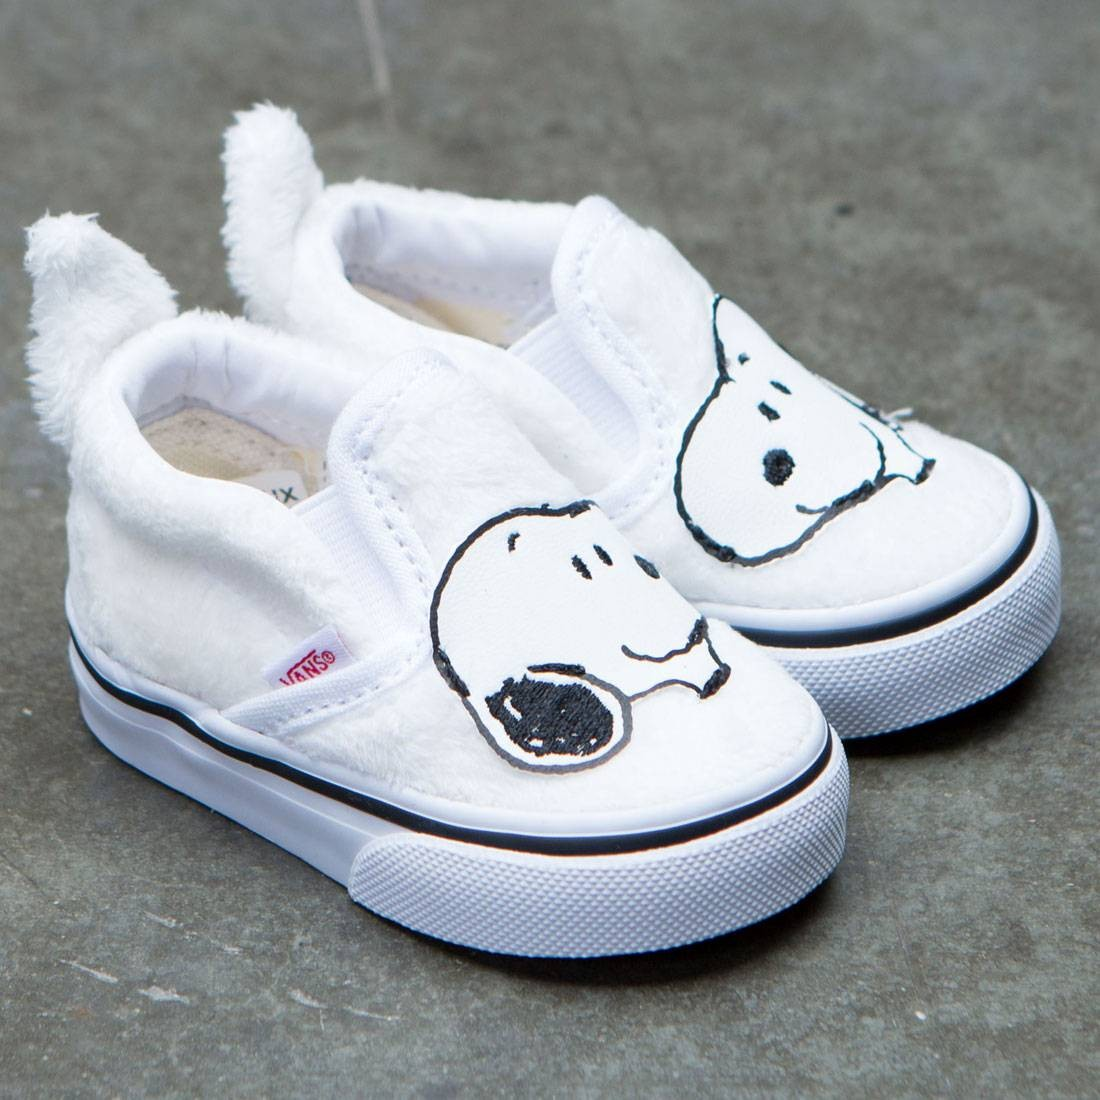 accf4d4c3f88c8 Vans x Peanuts Toddlers Classic Slip-On - Snoopy (white   true white)